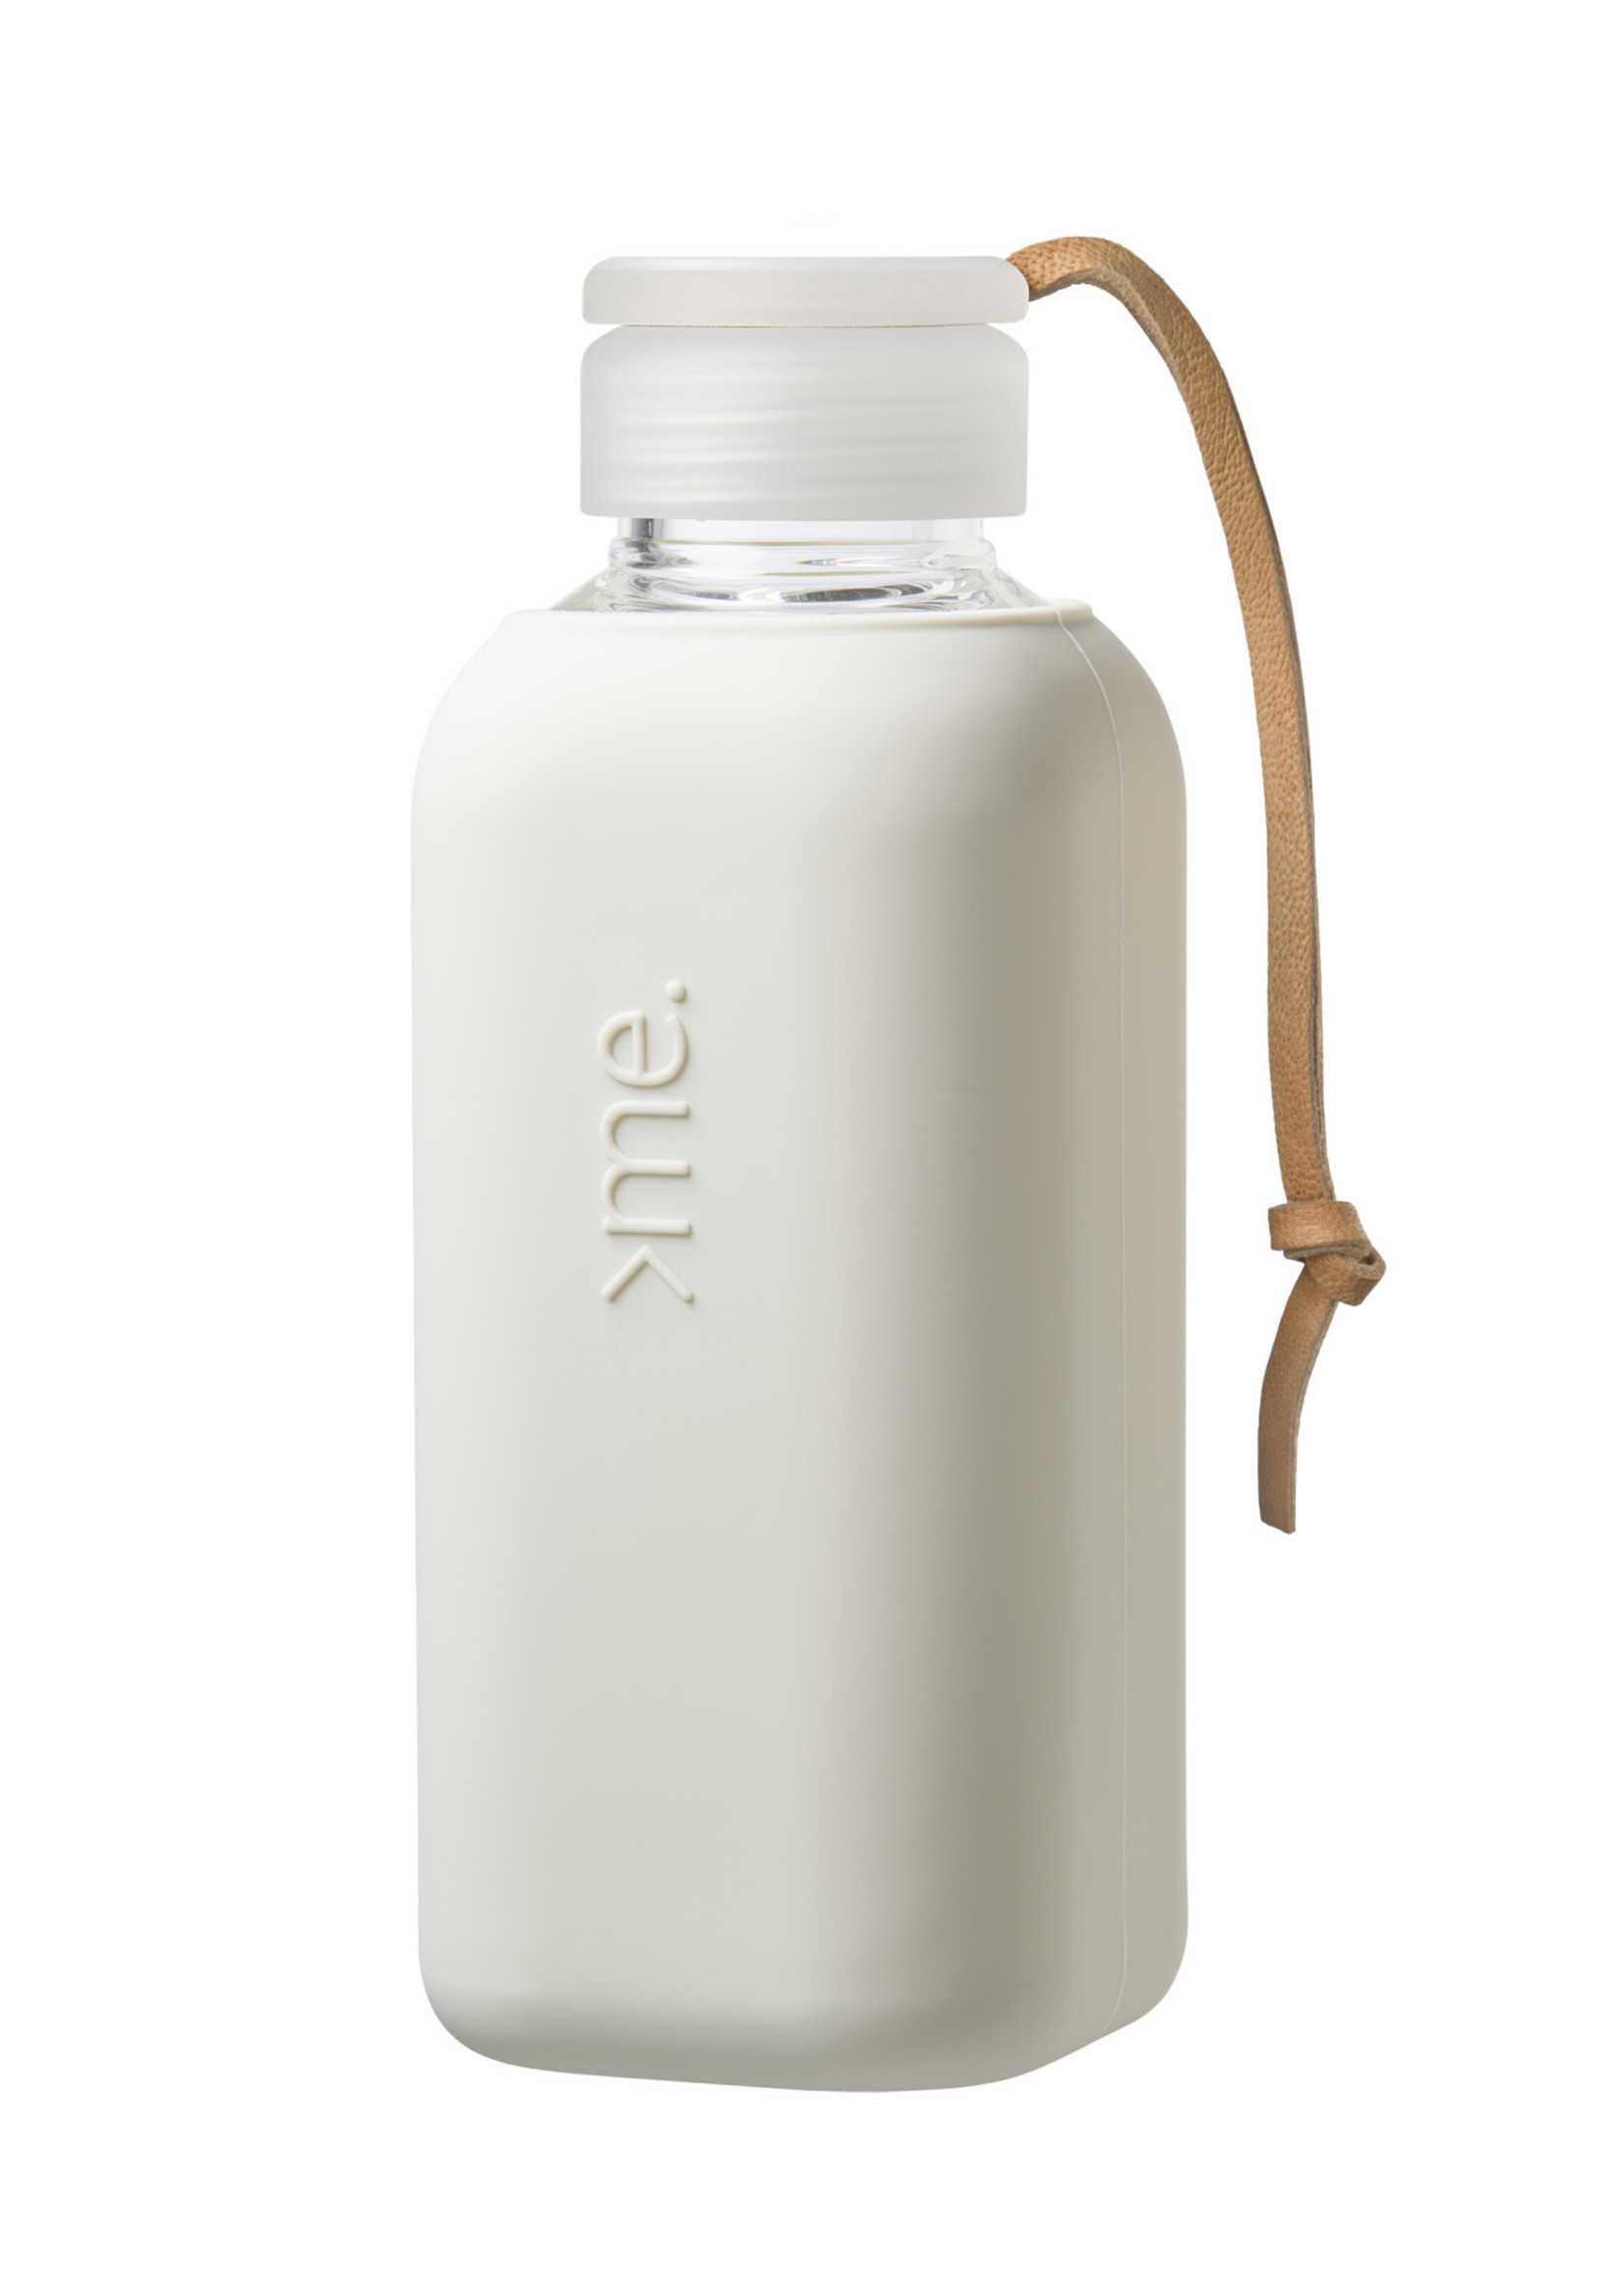 SQUIREME SQUIREME Y1 Bottle 600ml WHITE DOVE